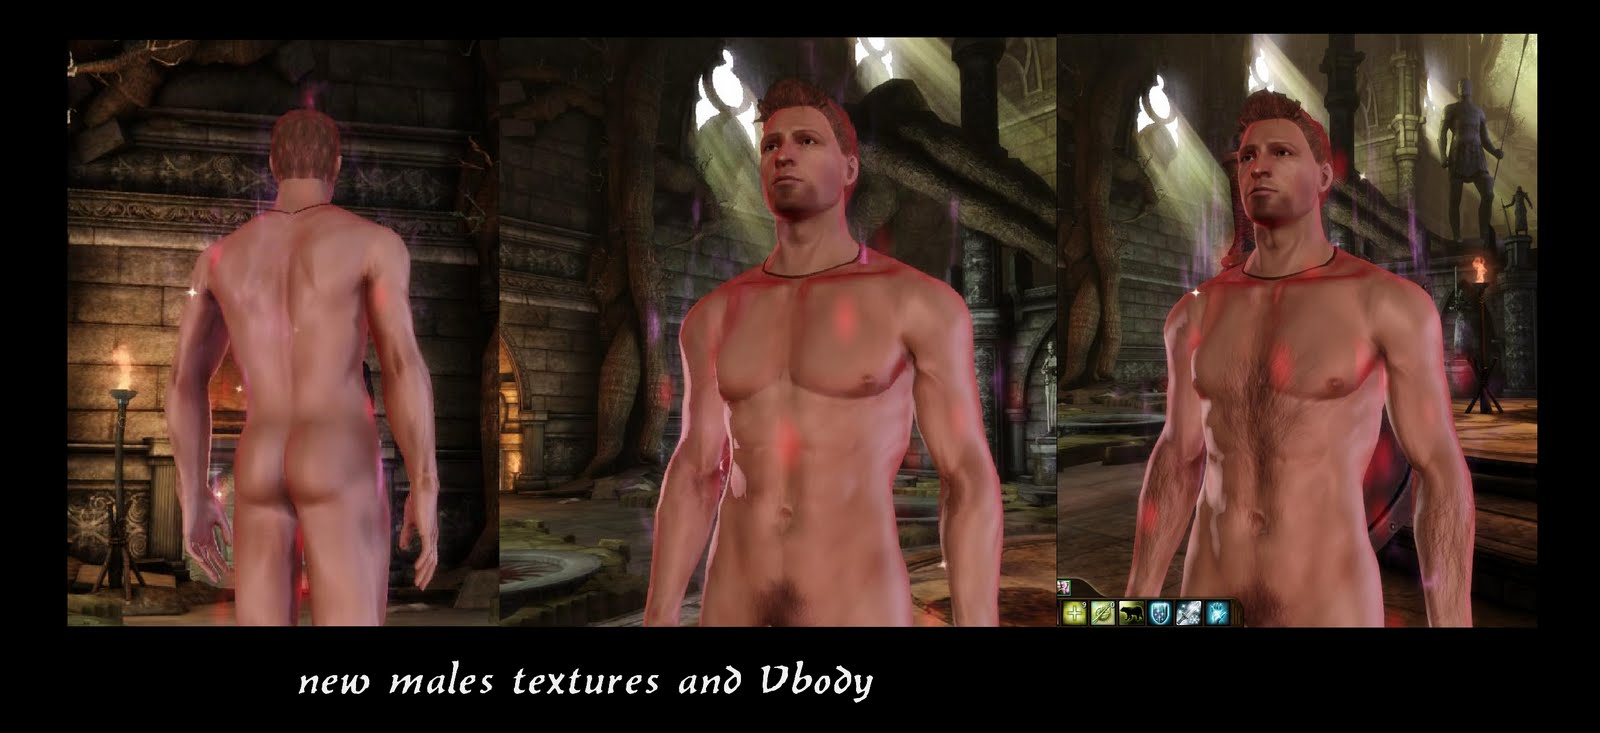 Dragon age origins gay sex nude mods hentai film